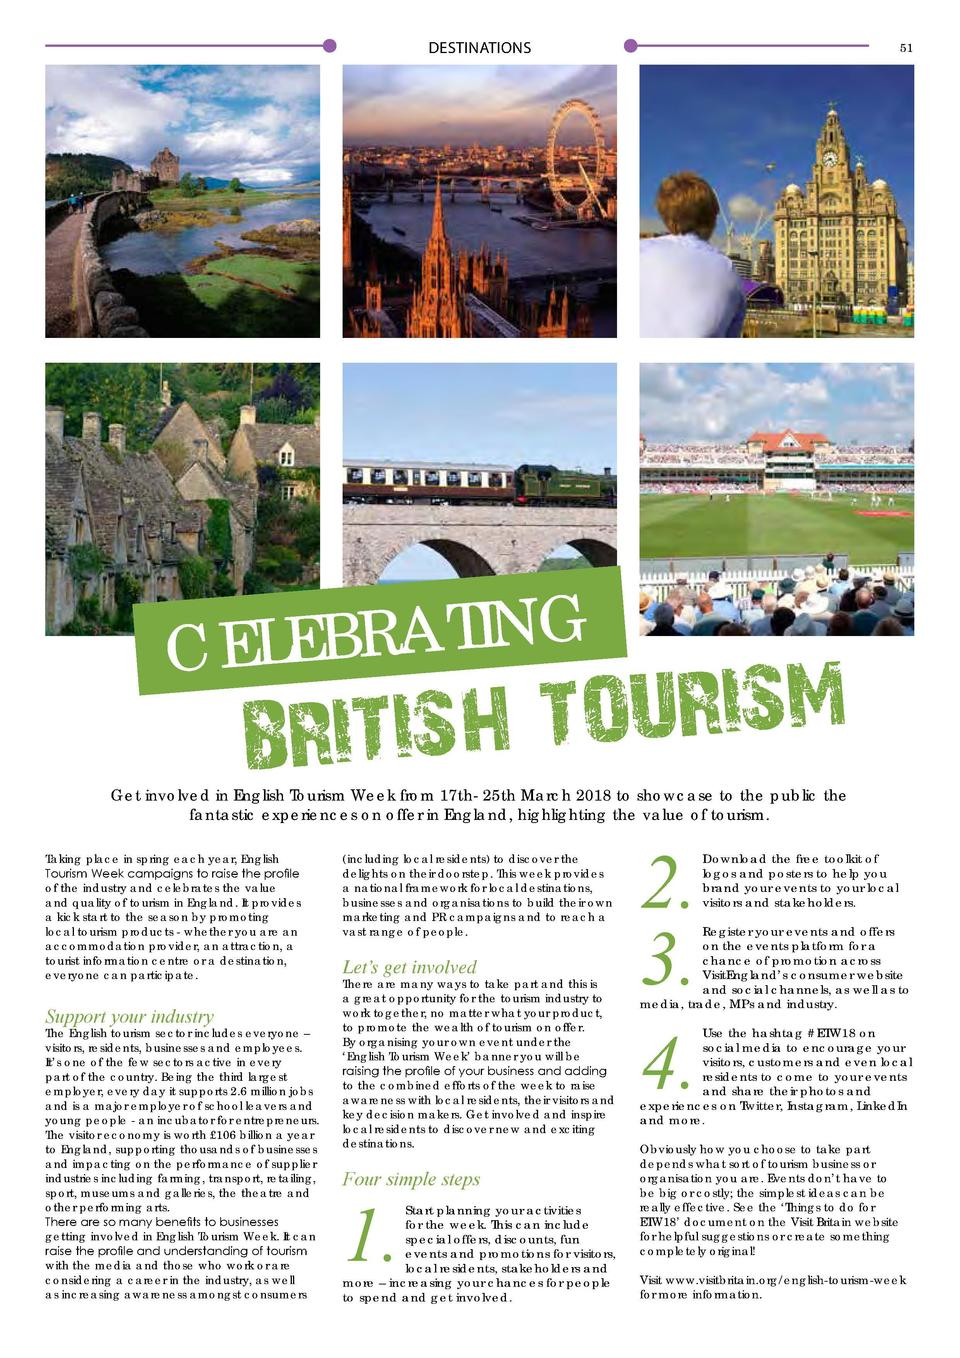 DESTINATIONS  51  G N I T A R B E CEL  M S I R U O T BRITISH  Get involved in English Tourism Week from 17th- 25th March 2...